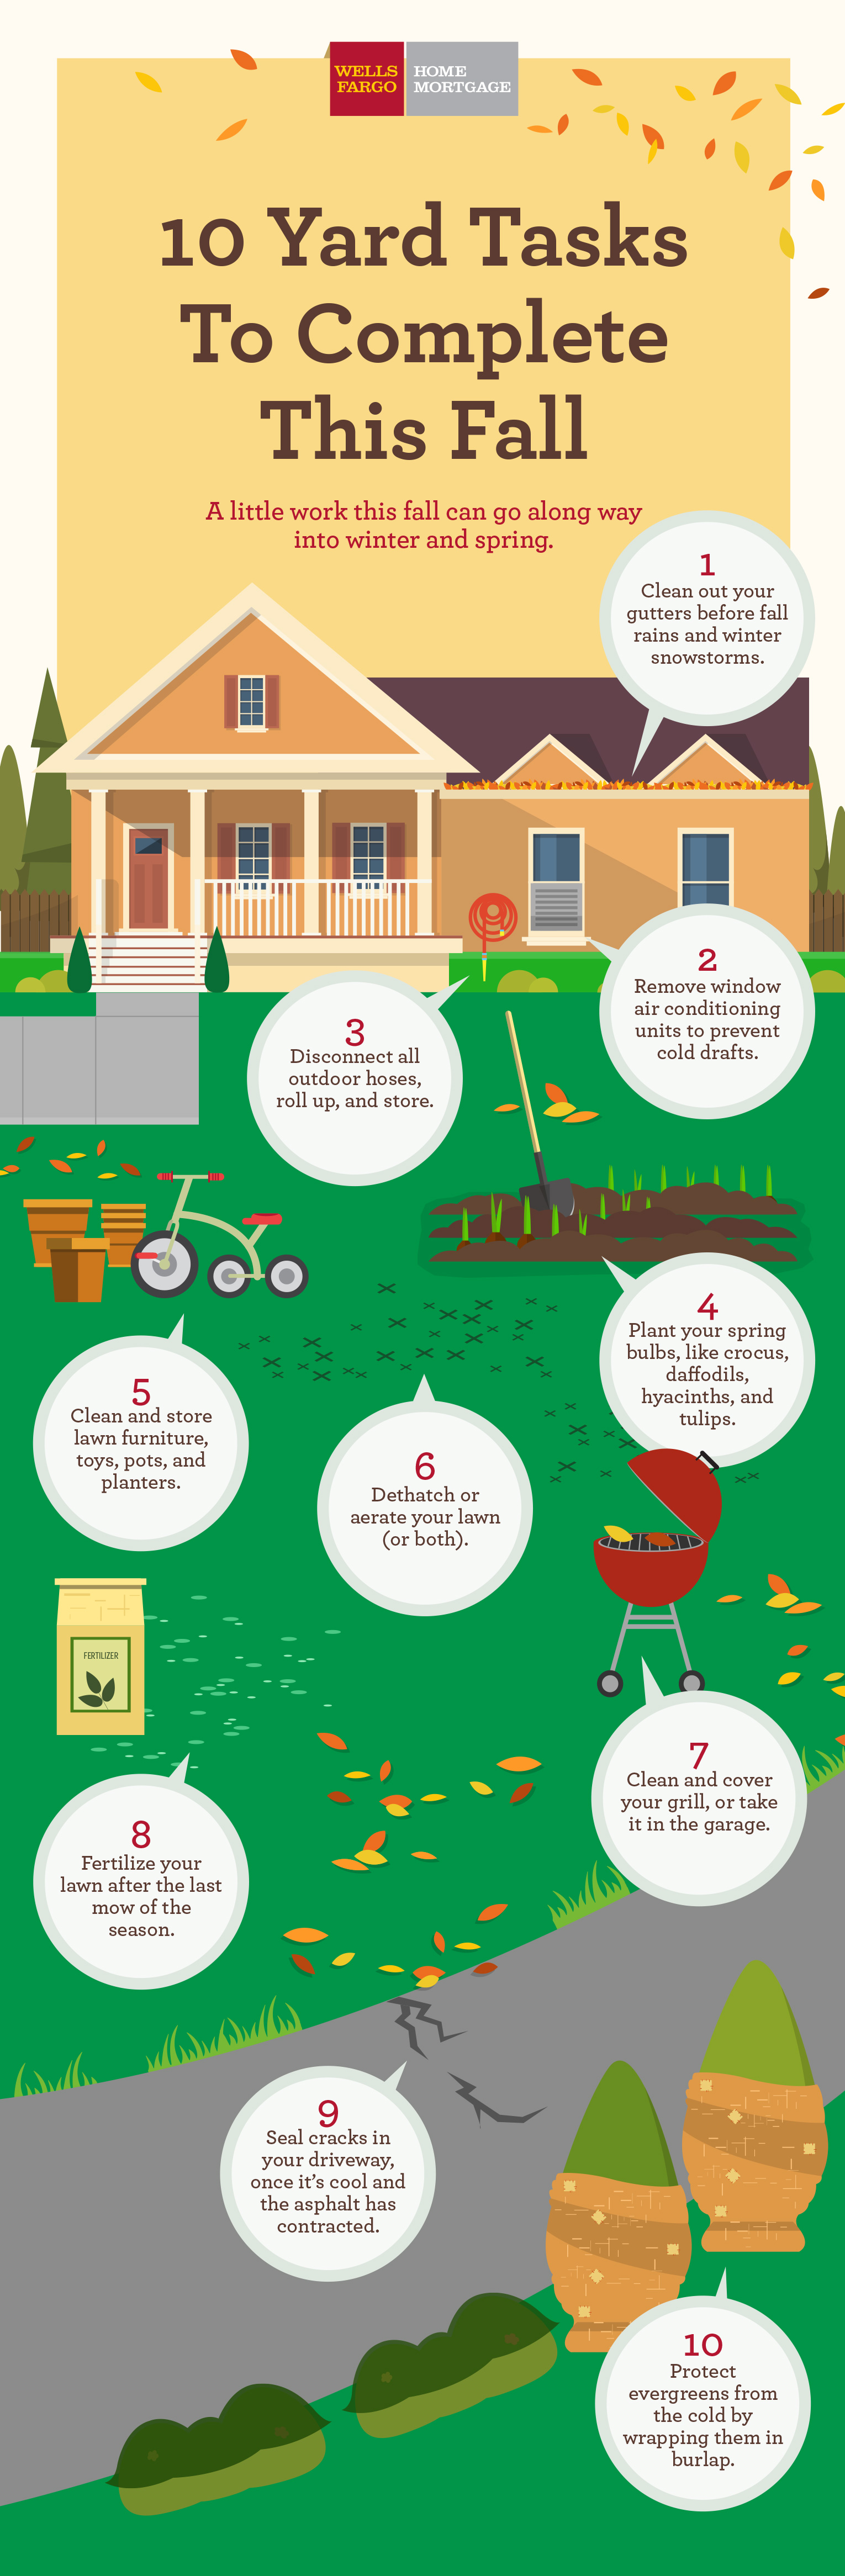 10 yard tasks to complete this fall: 1, clean out your gutters before fall rains and winter snowstorms; 2, remove window air conditioning units to prevent cold drafts; 3, disconnect all outdoor hoses, roll up, and store; 4, plant your spring bulbs, like crocus, daffodils, hyacinths, and tulips; 5, clean and store lawn furniture, toys, pots, and planters; 6, dethatch or aerate your lawn (or both); 7, clean and cover your grill, or take it in the garage; 8, fertilize your lawn after the last mow of the season; 9, seal cracks in your driveway, once it's cool and the asphalt has contracted; 10, protect evergreens from the cold by wrapping them in burlap.